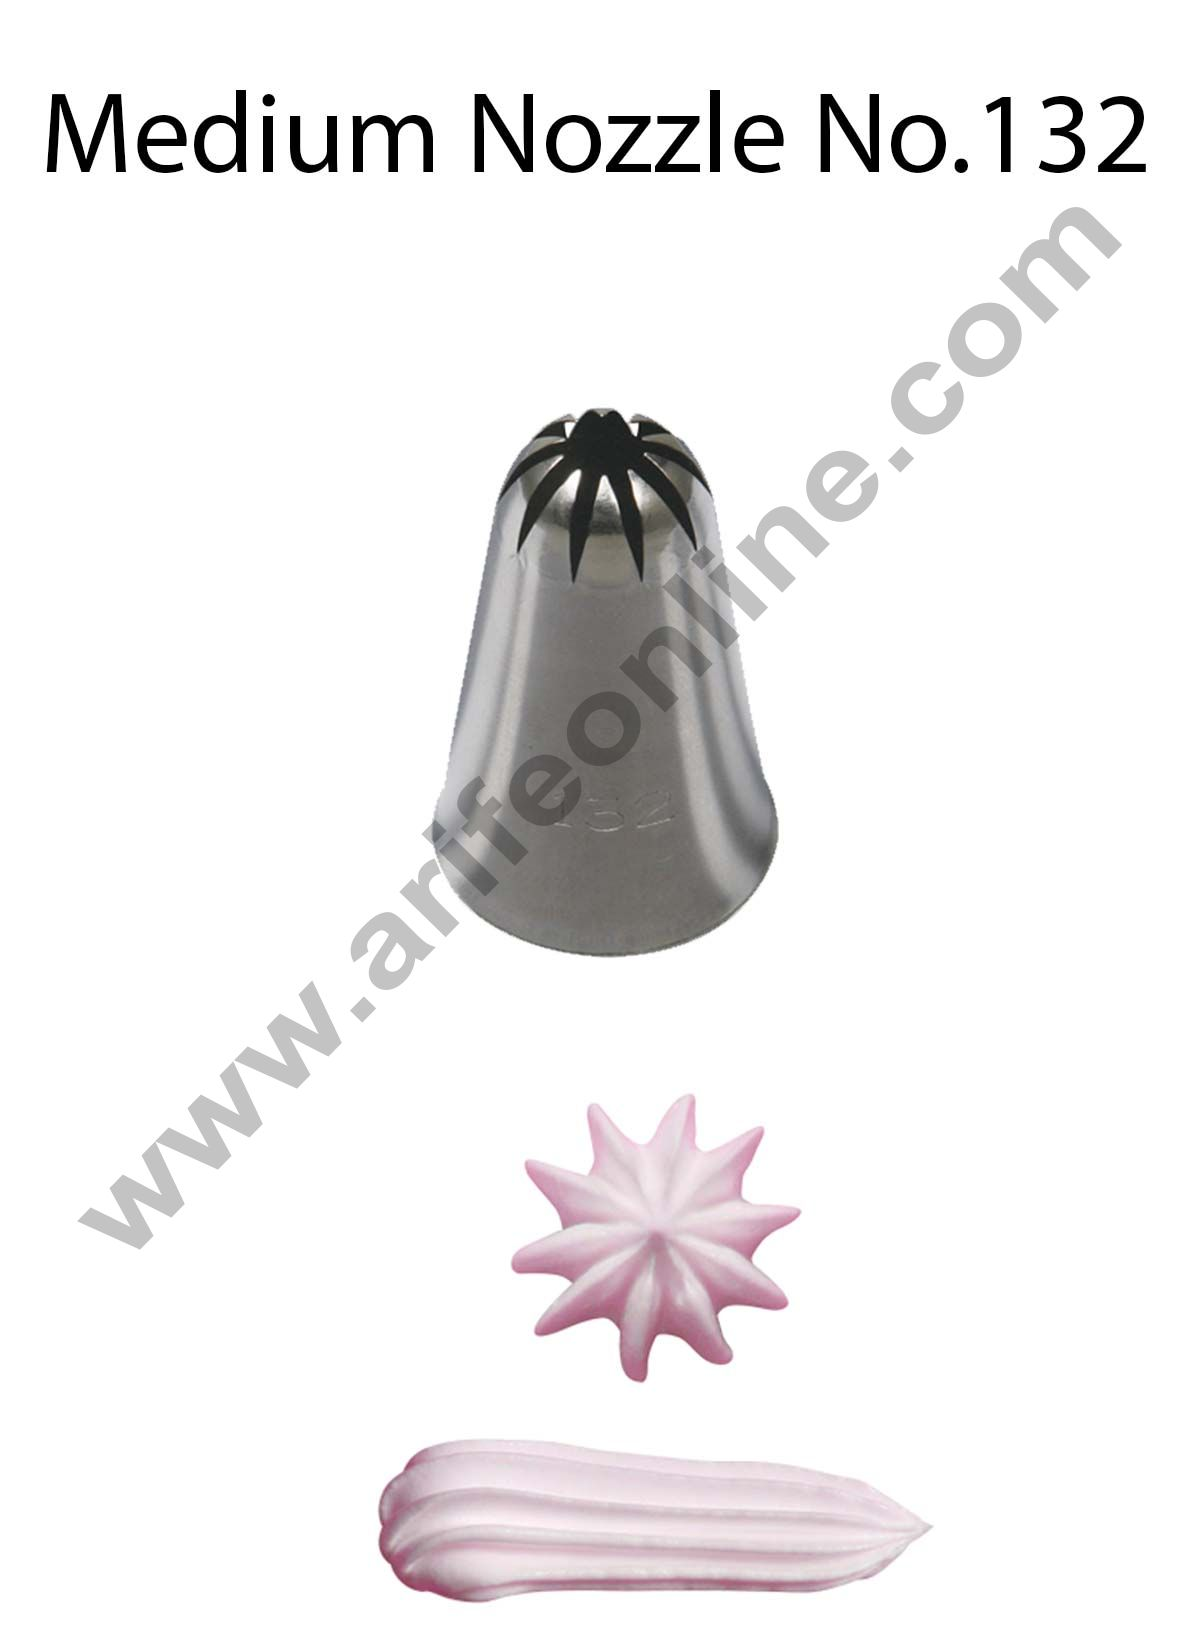 Cake Decor Medium Nozzle - No. 132 Closed Star Piping Nozzle